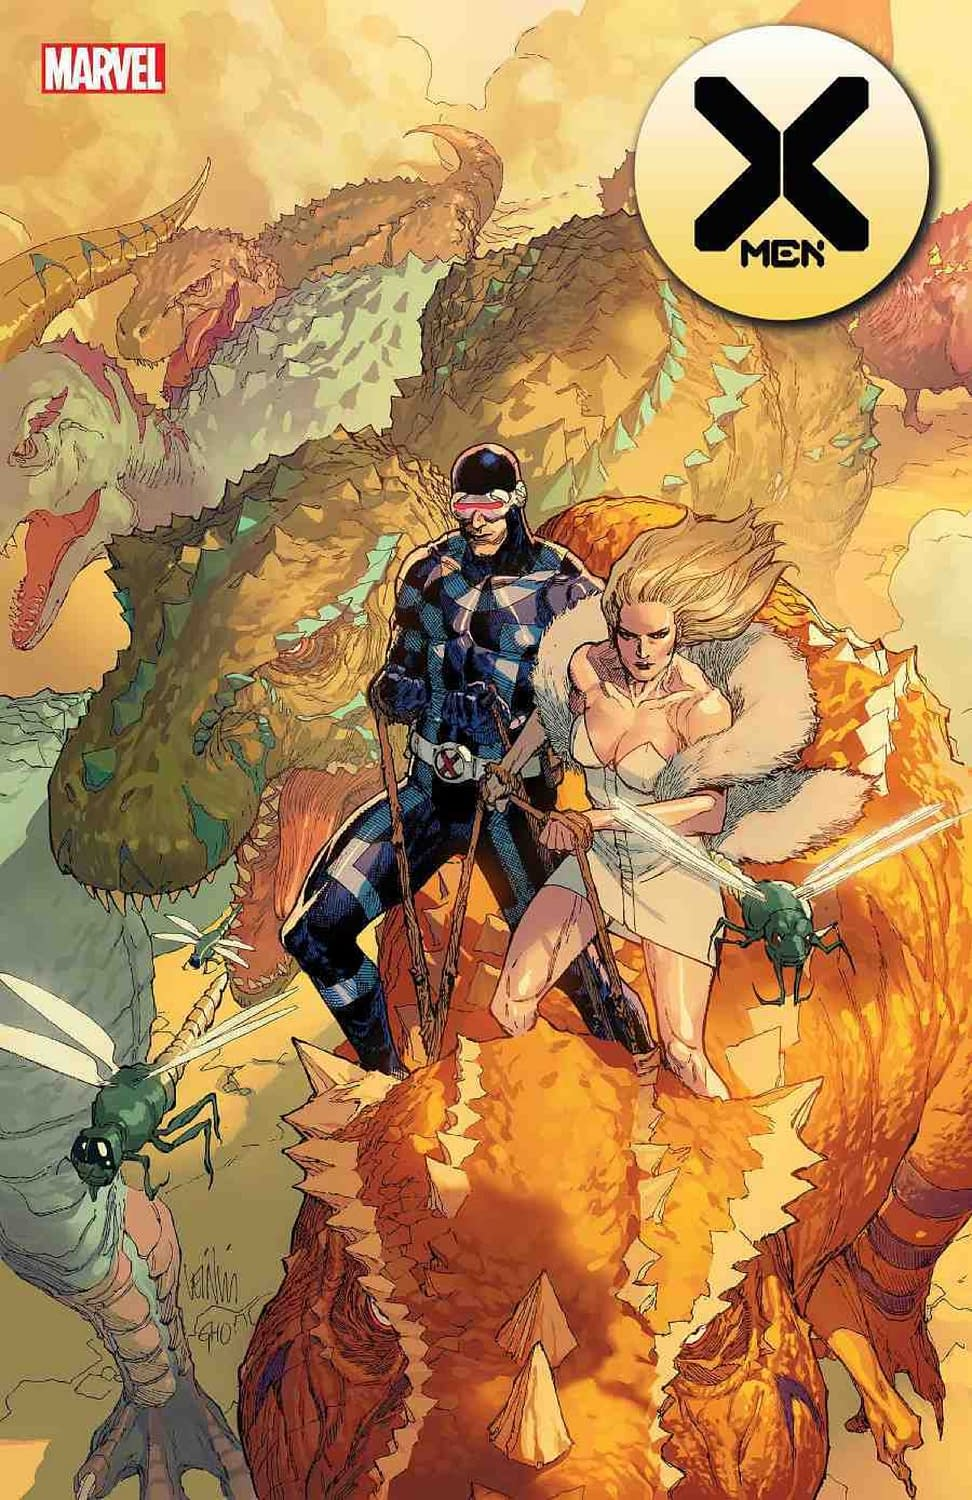 X-Men Head to Savage Land in December Solicits... Are They Going for the New KFC Glazed Donut Chicken Sandwich?